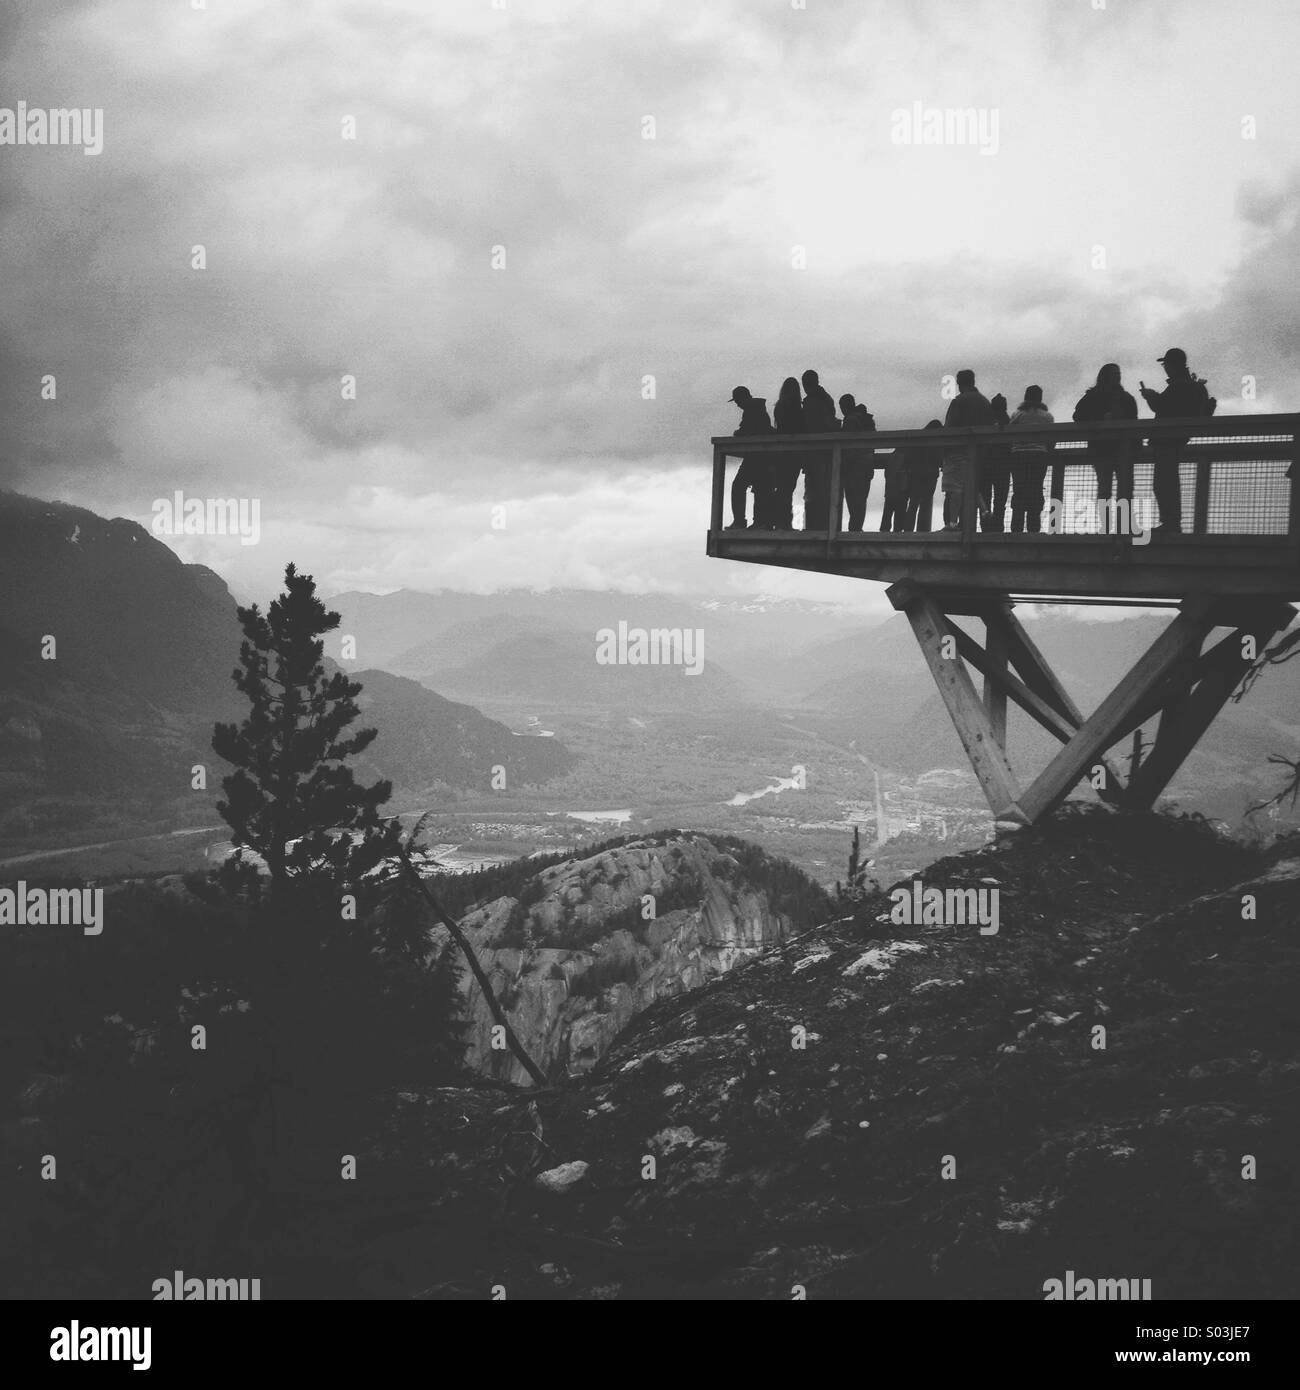 Sightseers looking out over coastal mountains in Squamish, British Columbia - Stock Image